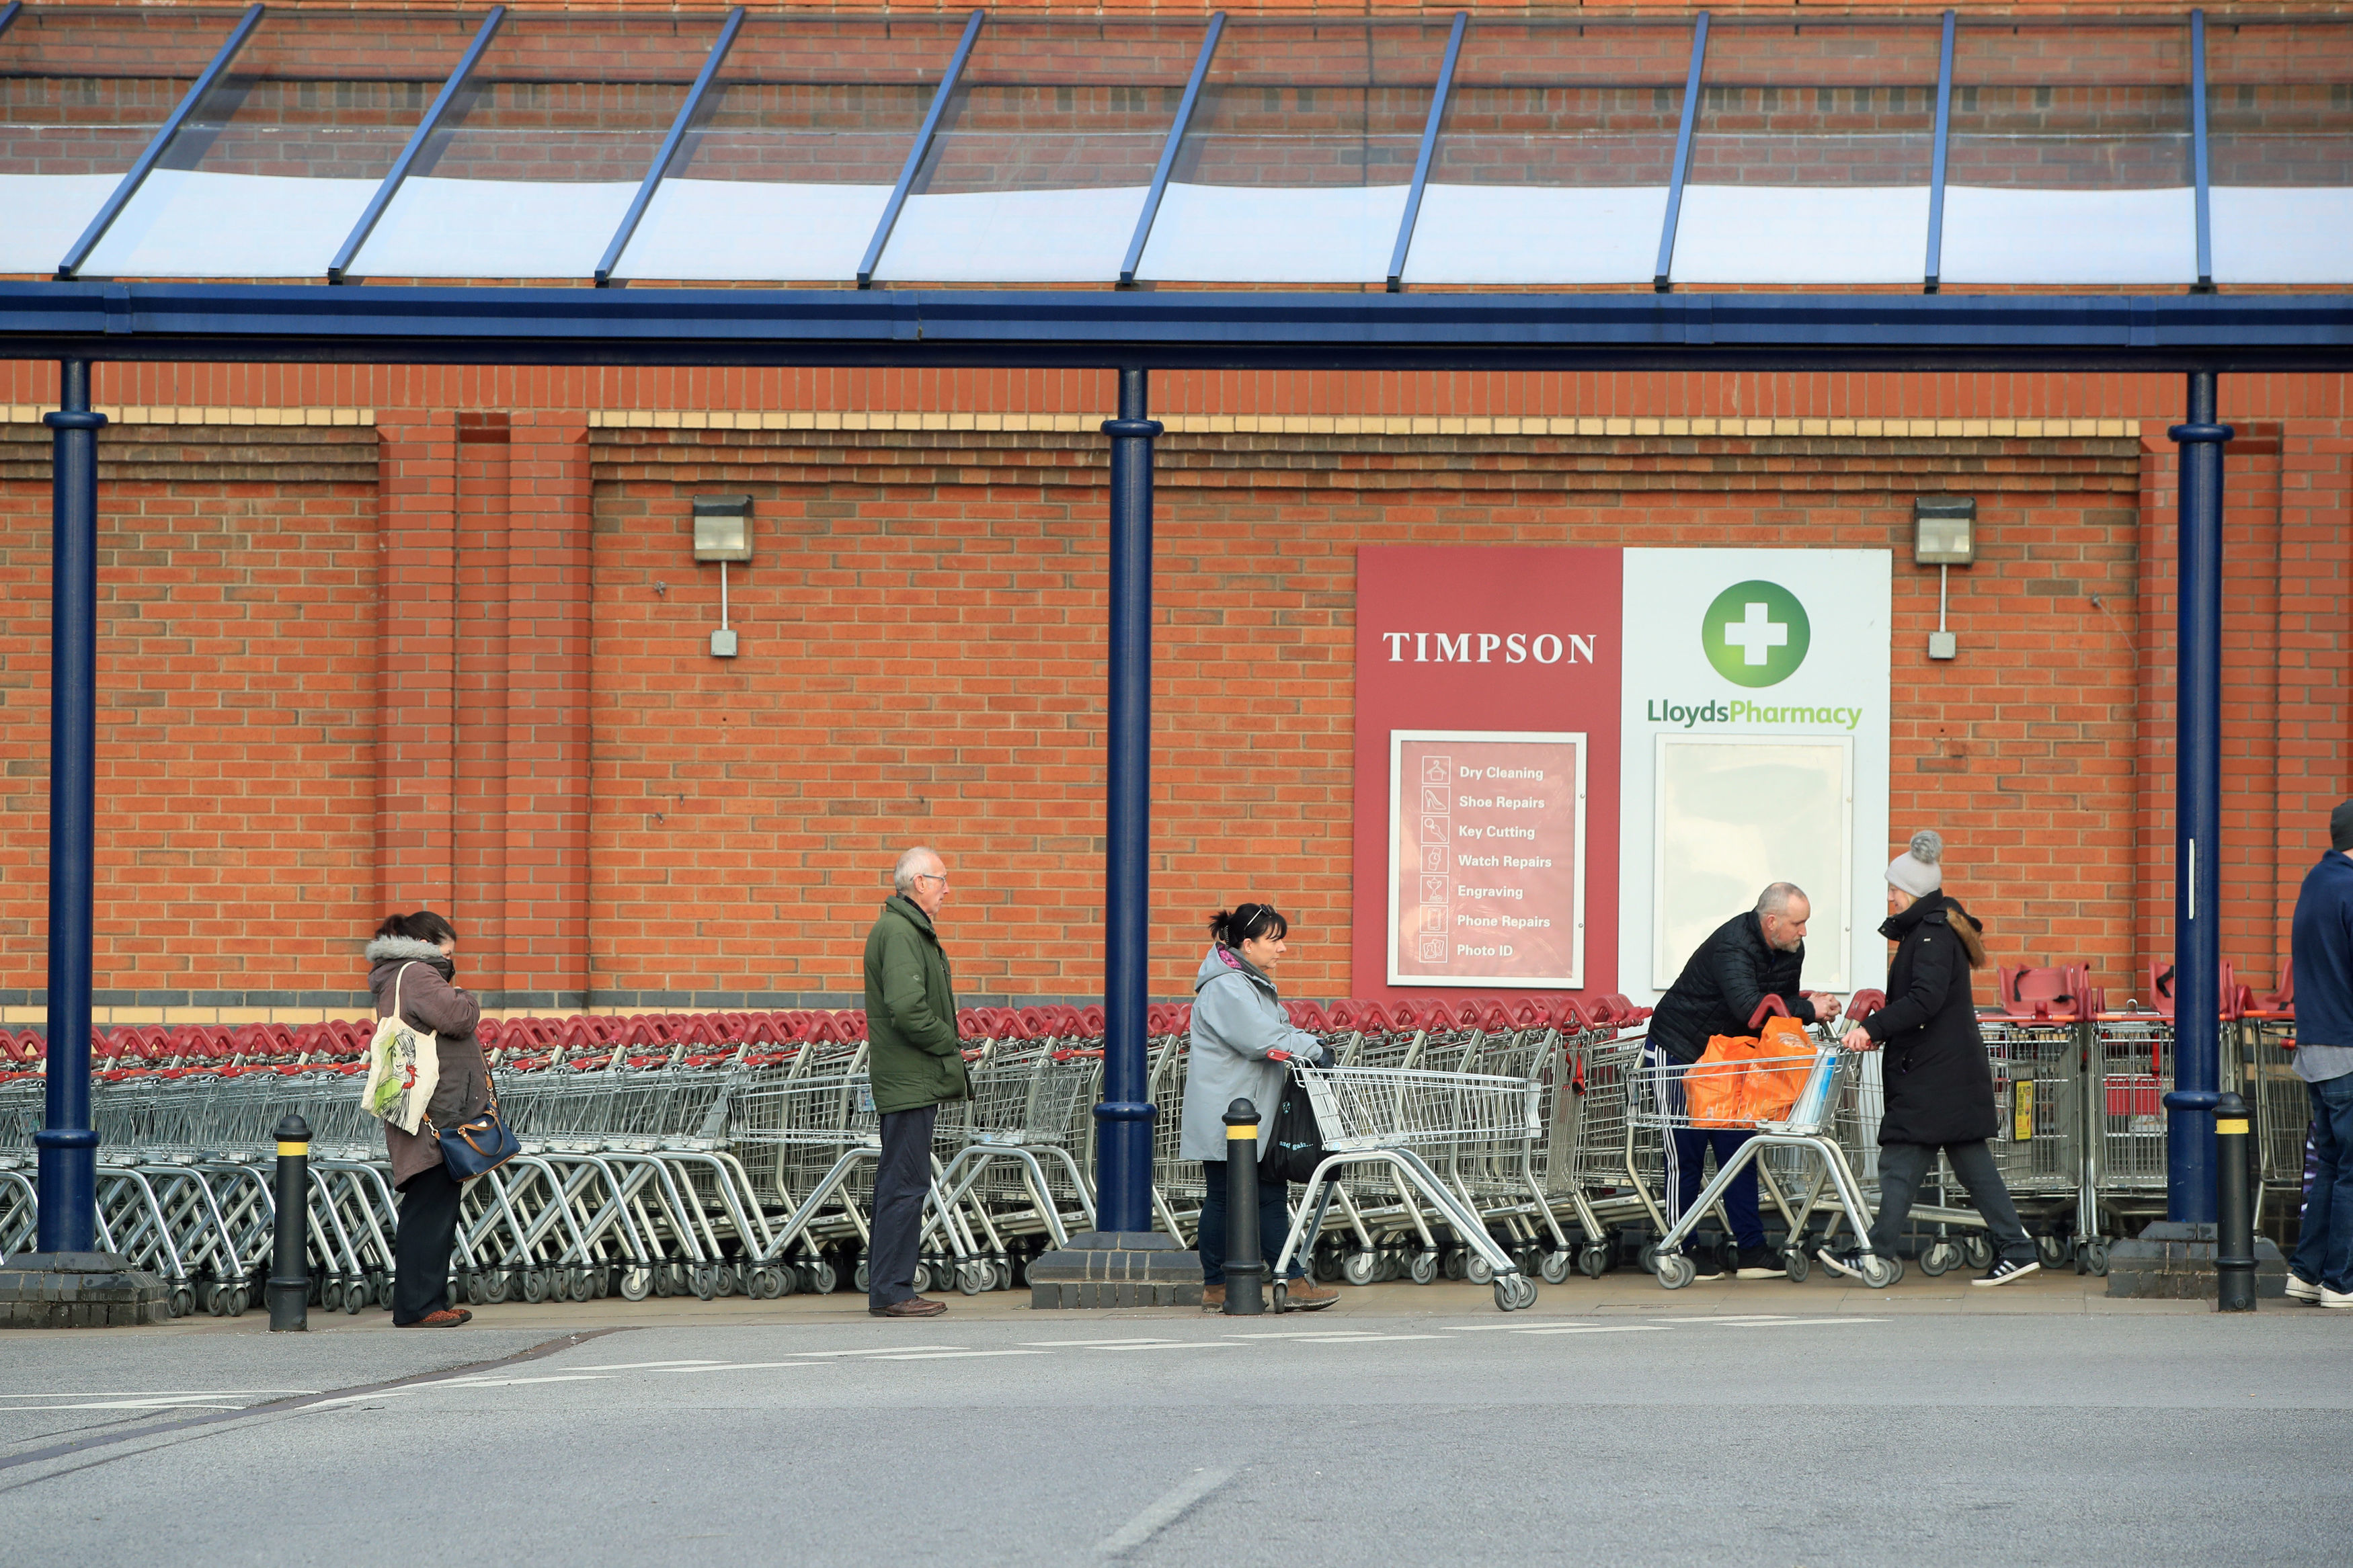 Ministers told councils earlier this week to place limits on the number of people allowed into shops